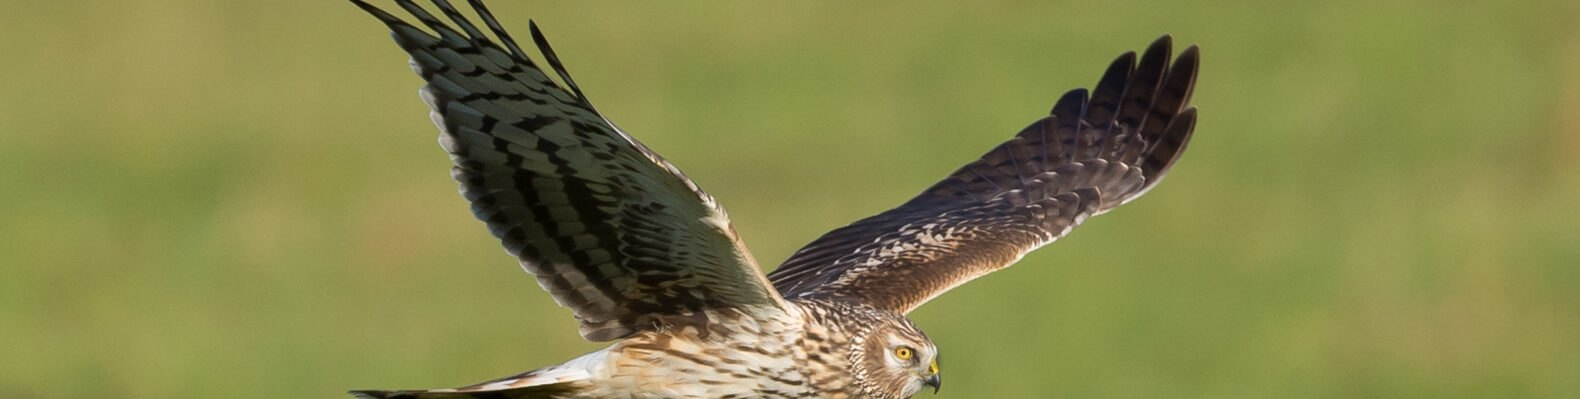 hen harrier flying above grassy field